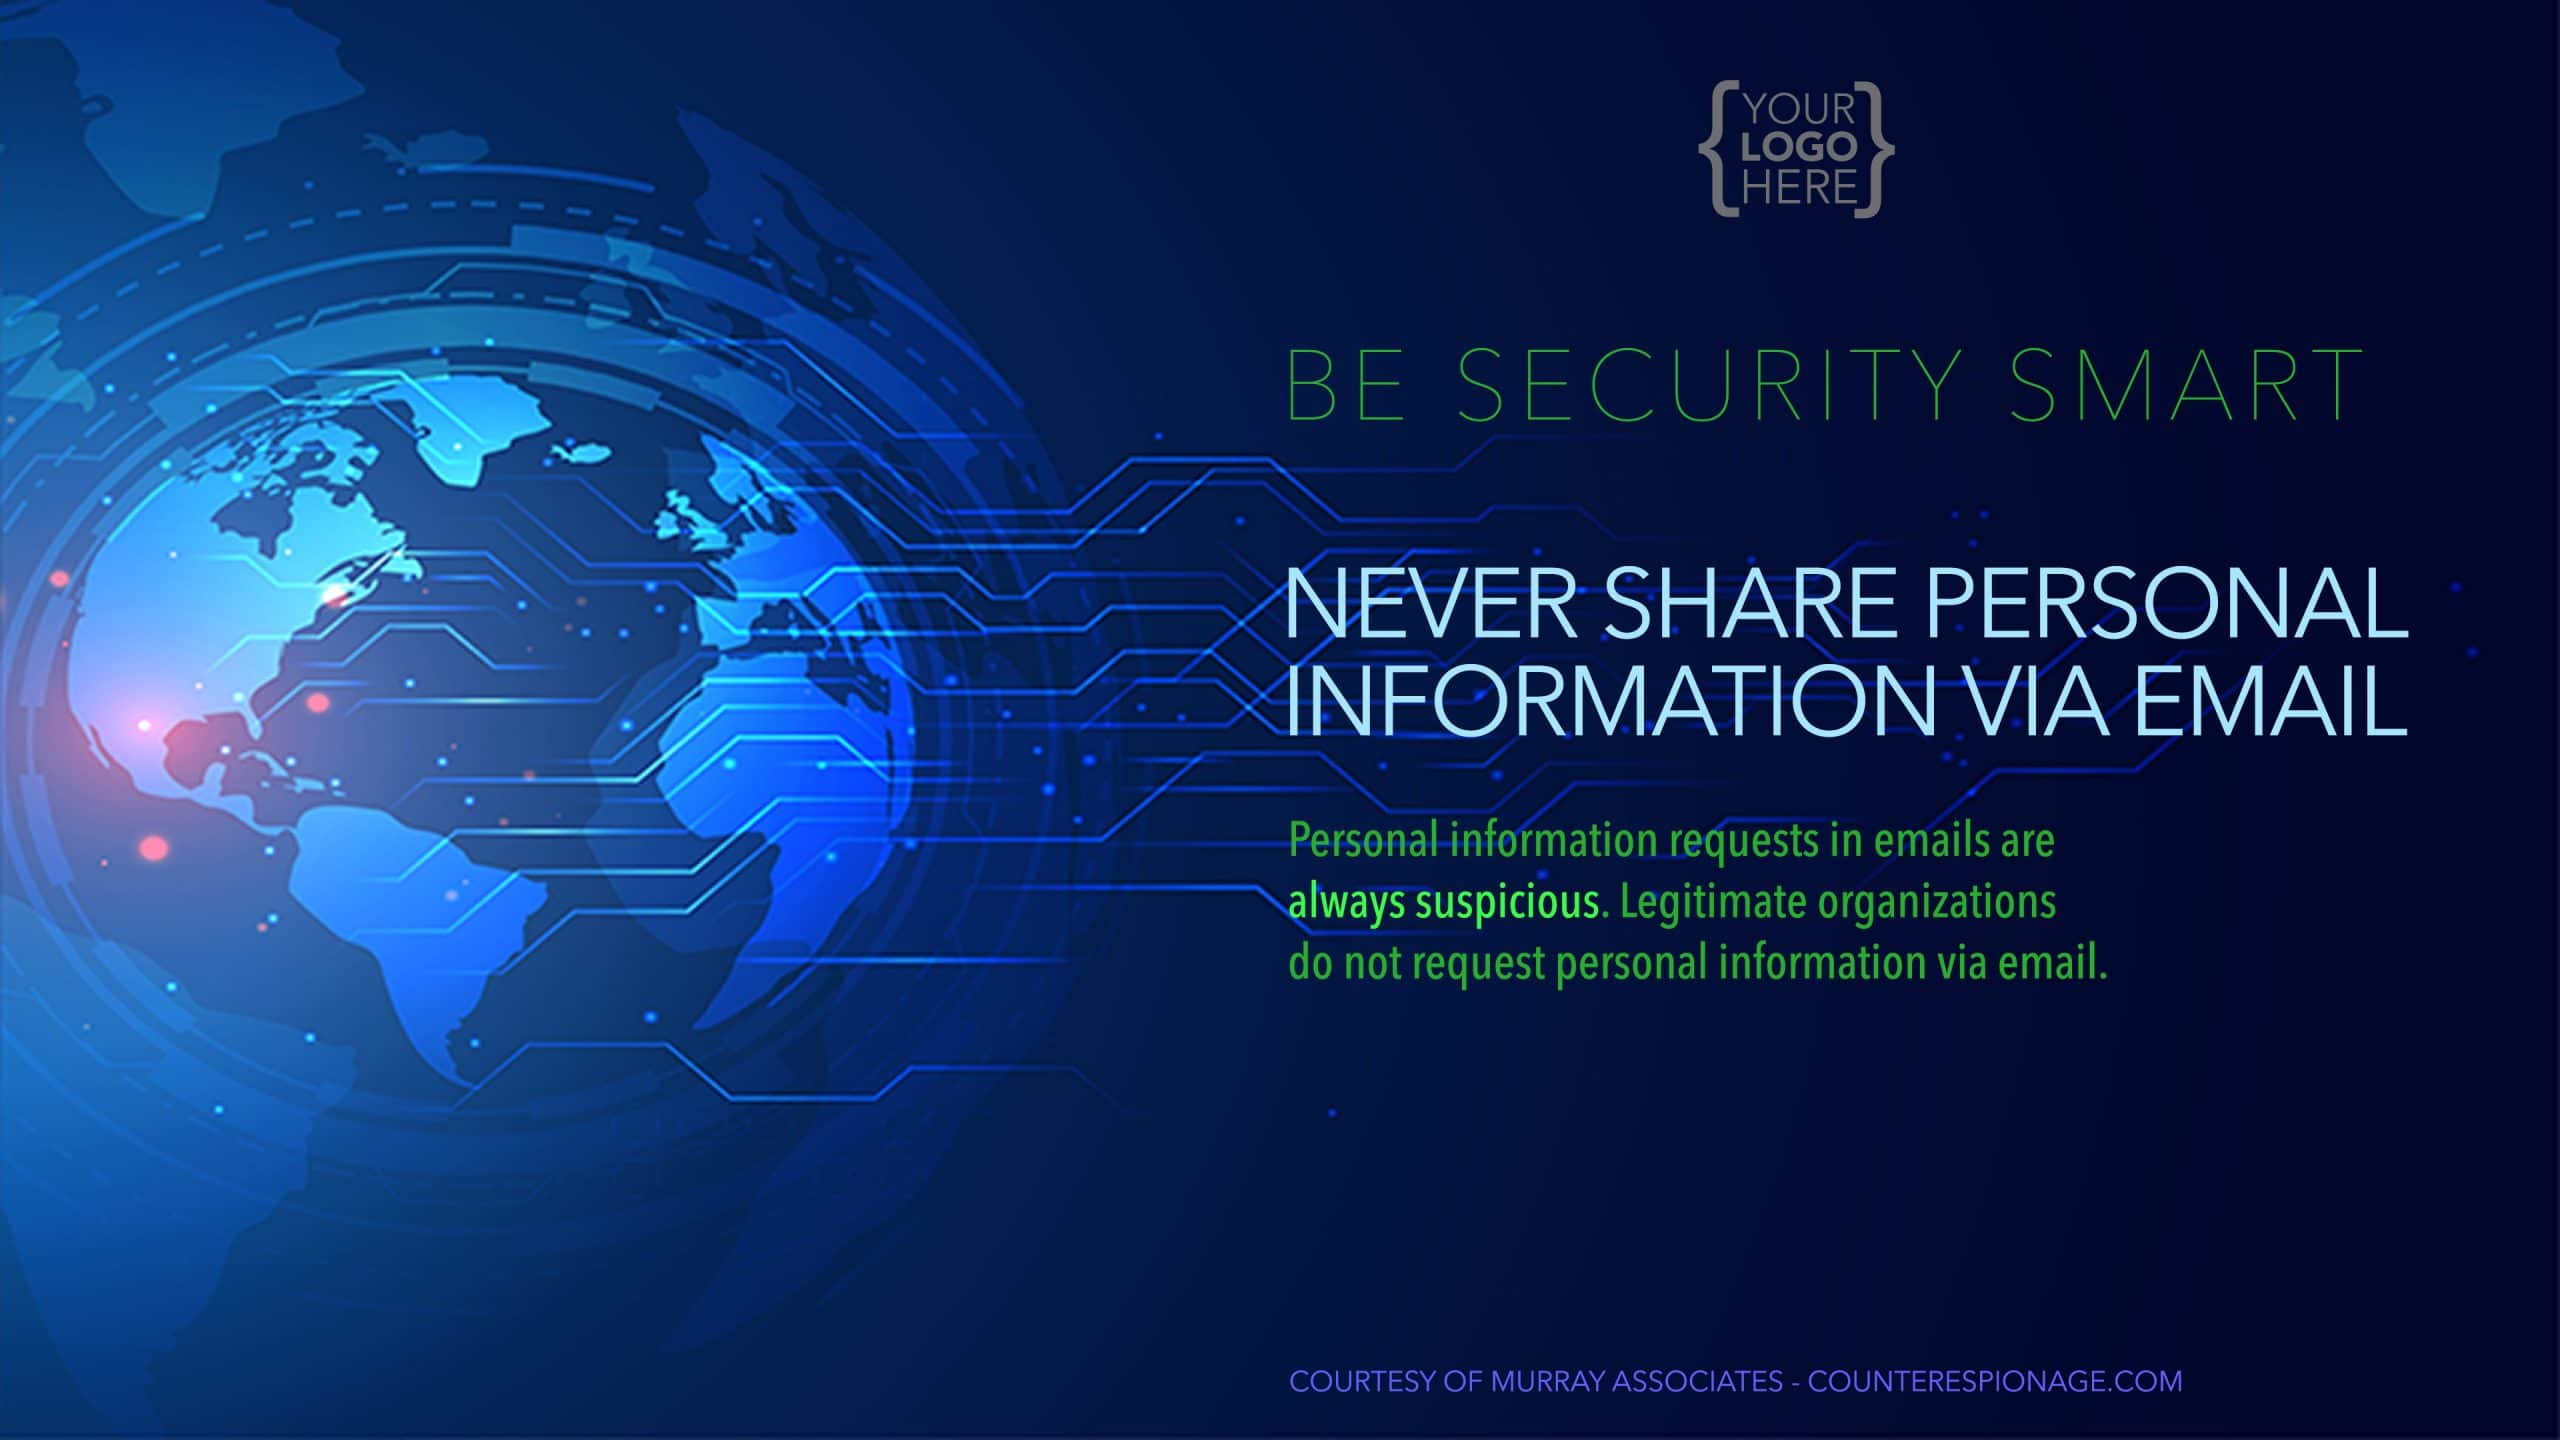 Security Reminder Screen Saver 3 - Never Share